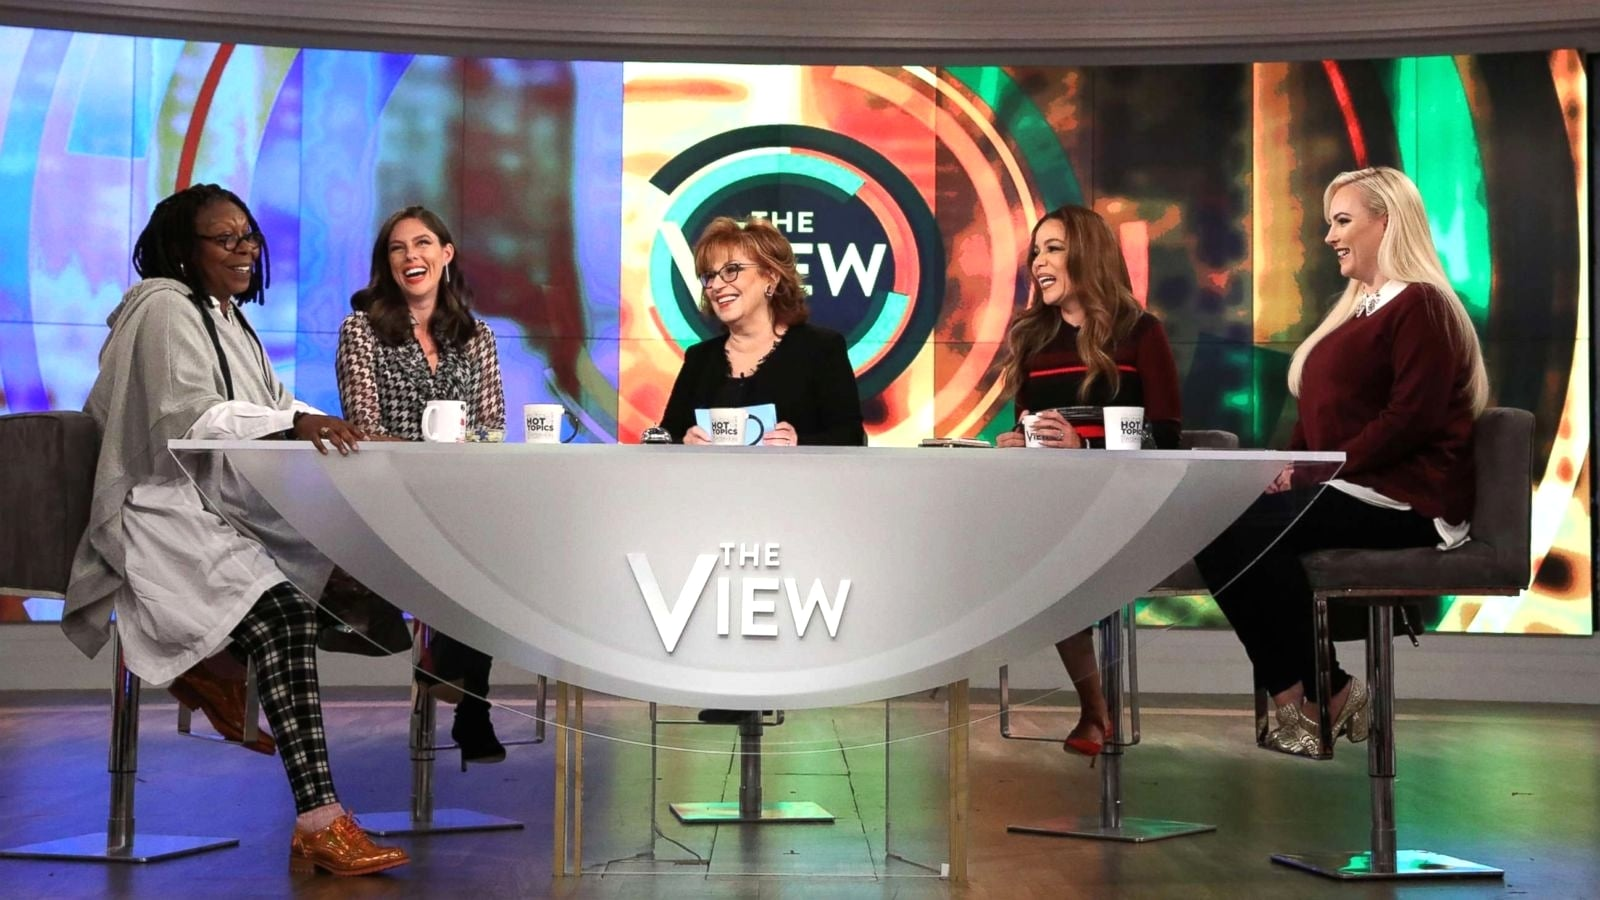 The View - Season 13